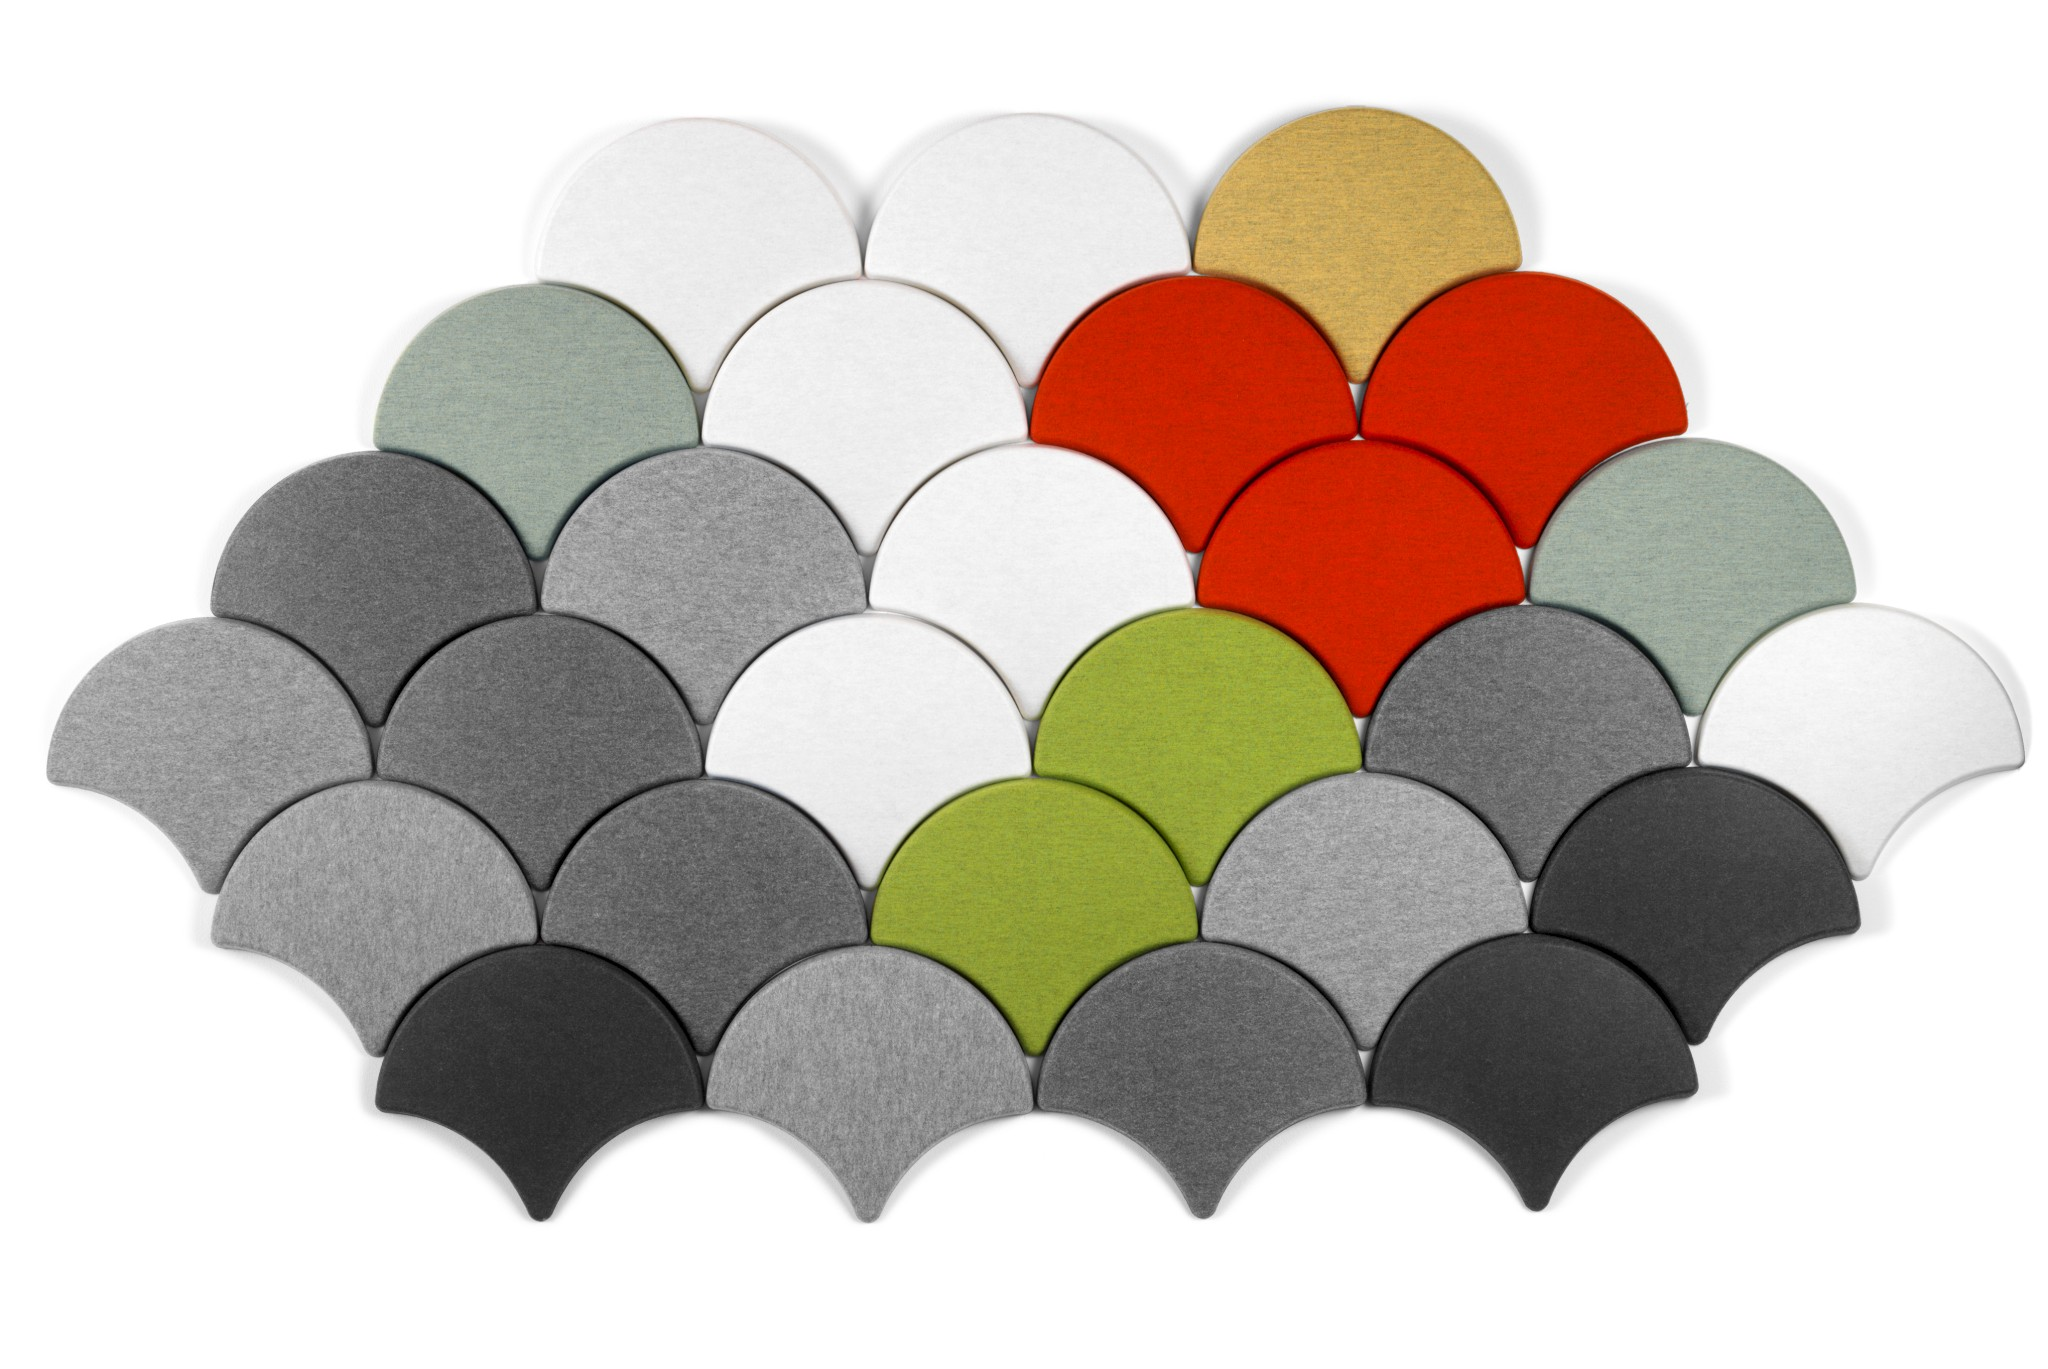 Decorative Acoustic Tiles Ginkgo Decorative Acoustic Tiles From Blå Station  Acoustics With .